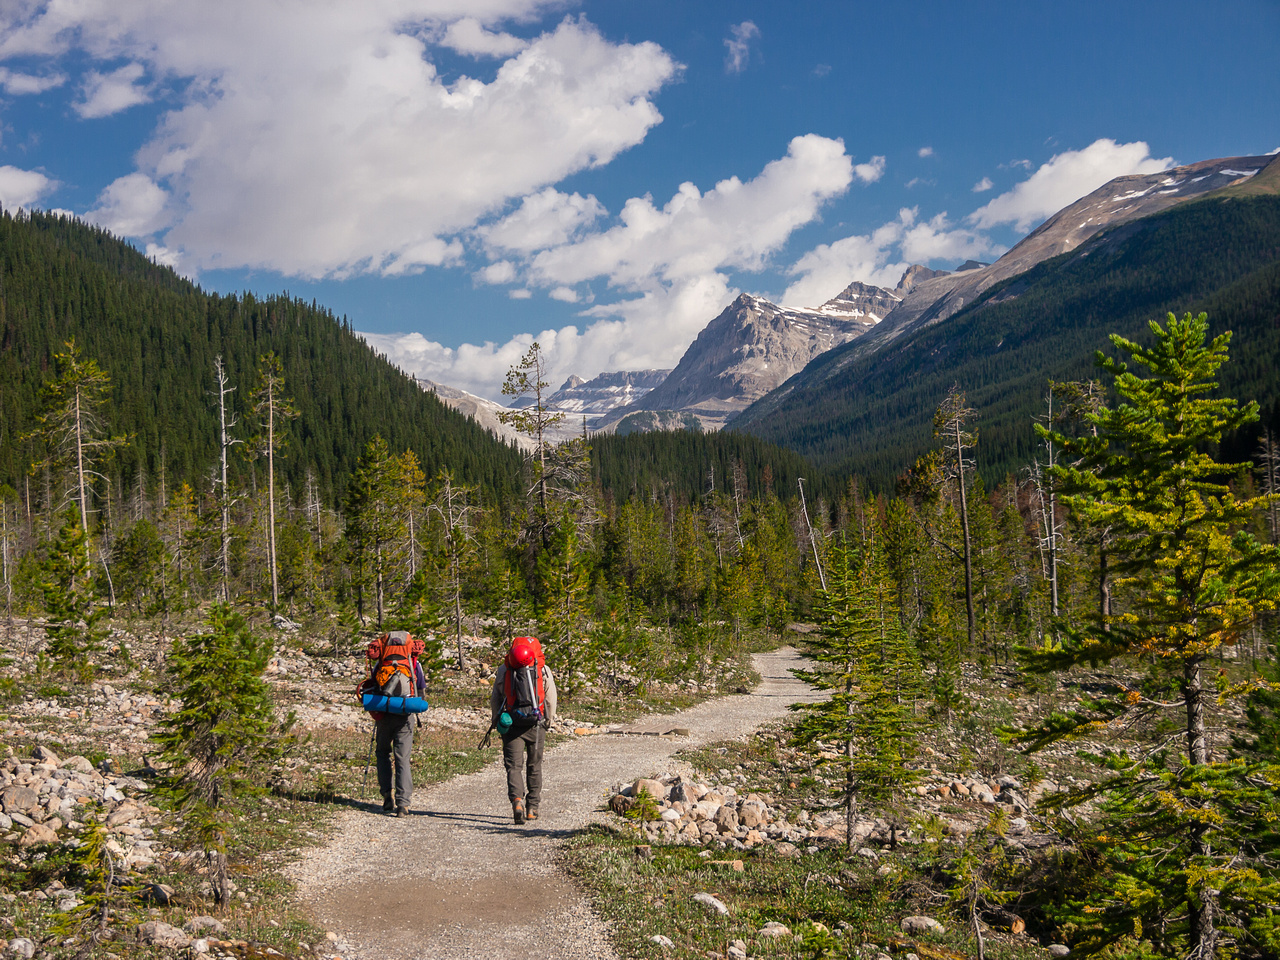 We start off down the well maintained Yoho Valley trail in perfect weather.